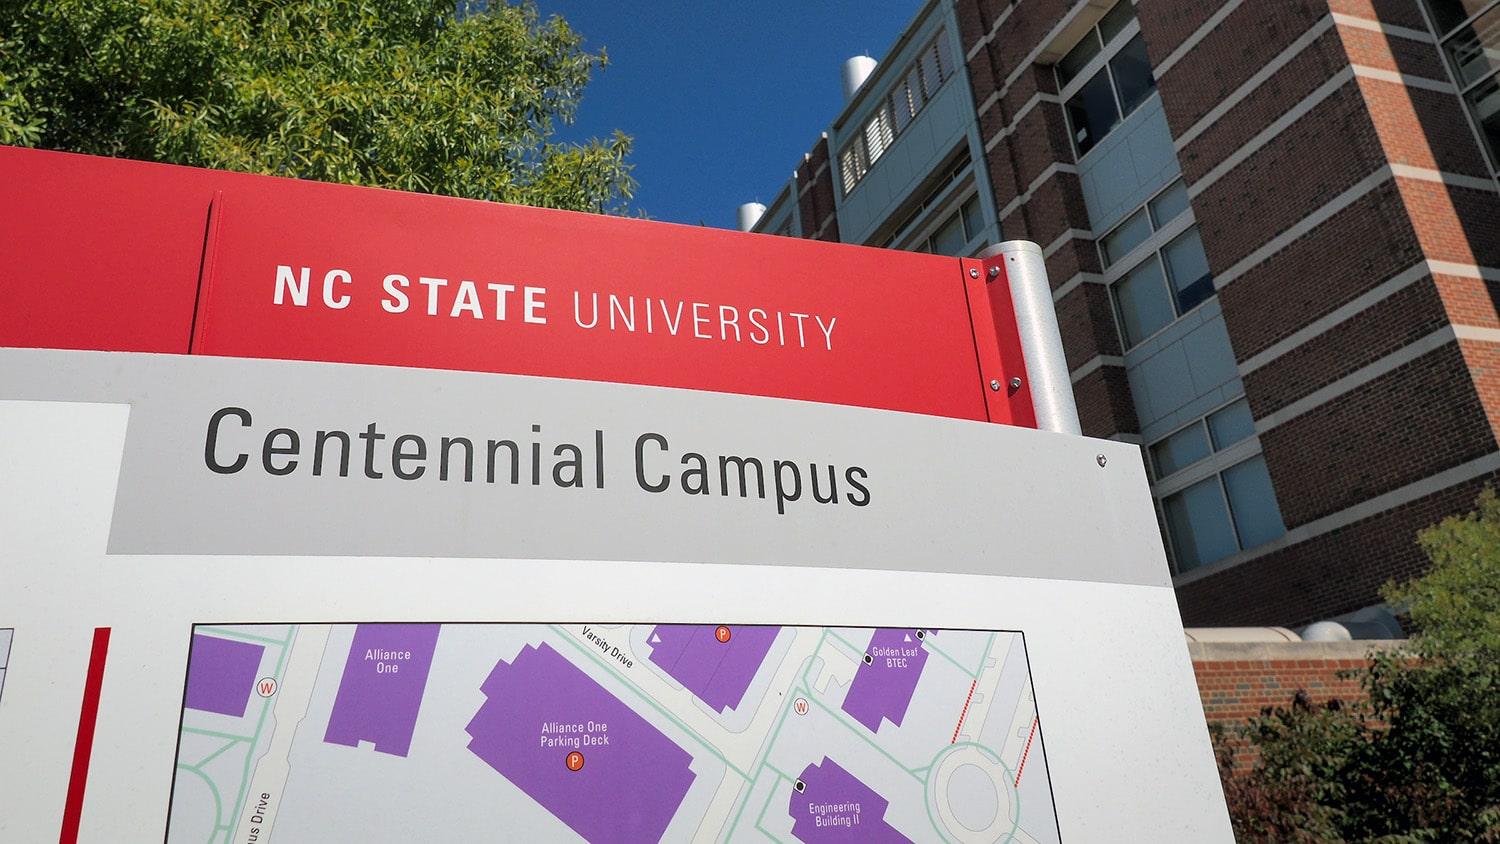 A directional sign (map) helps orient visitors to Centennial campus. In the background is Engineering building 1.